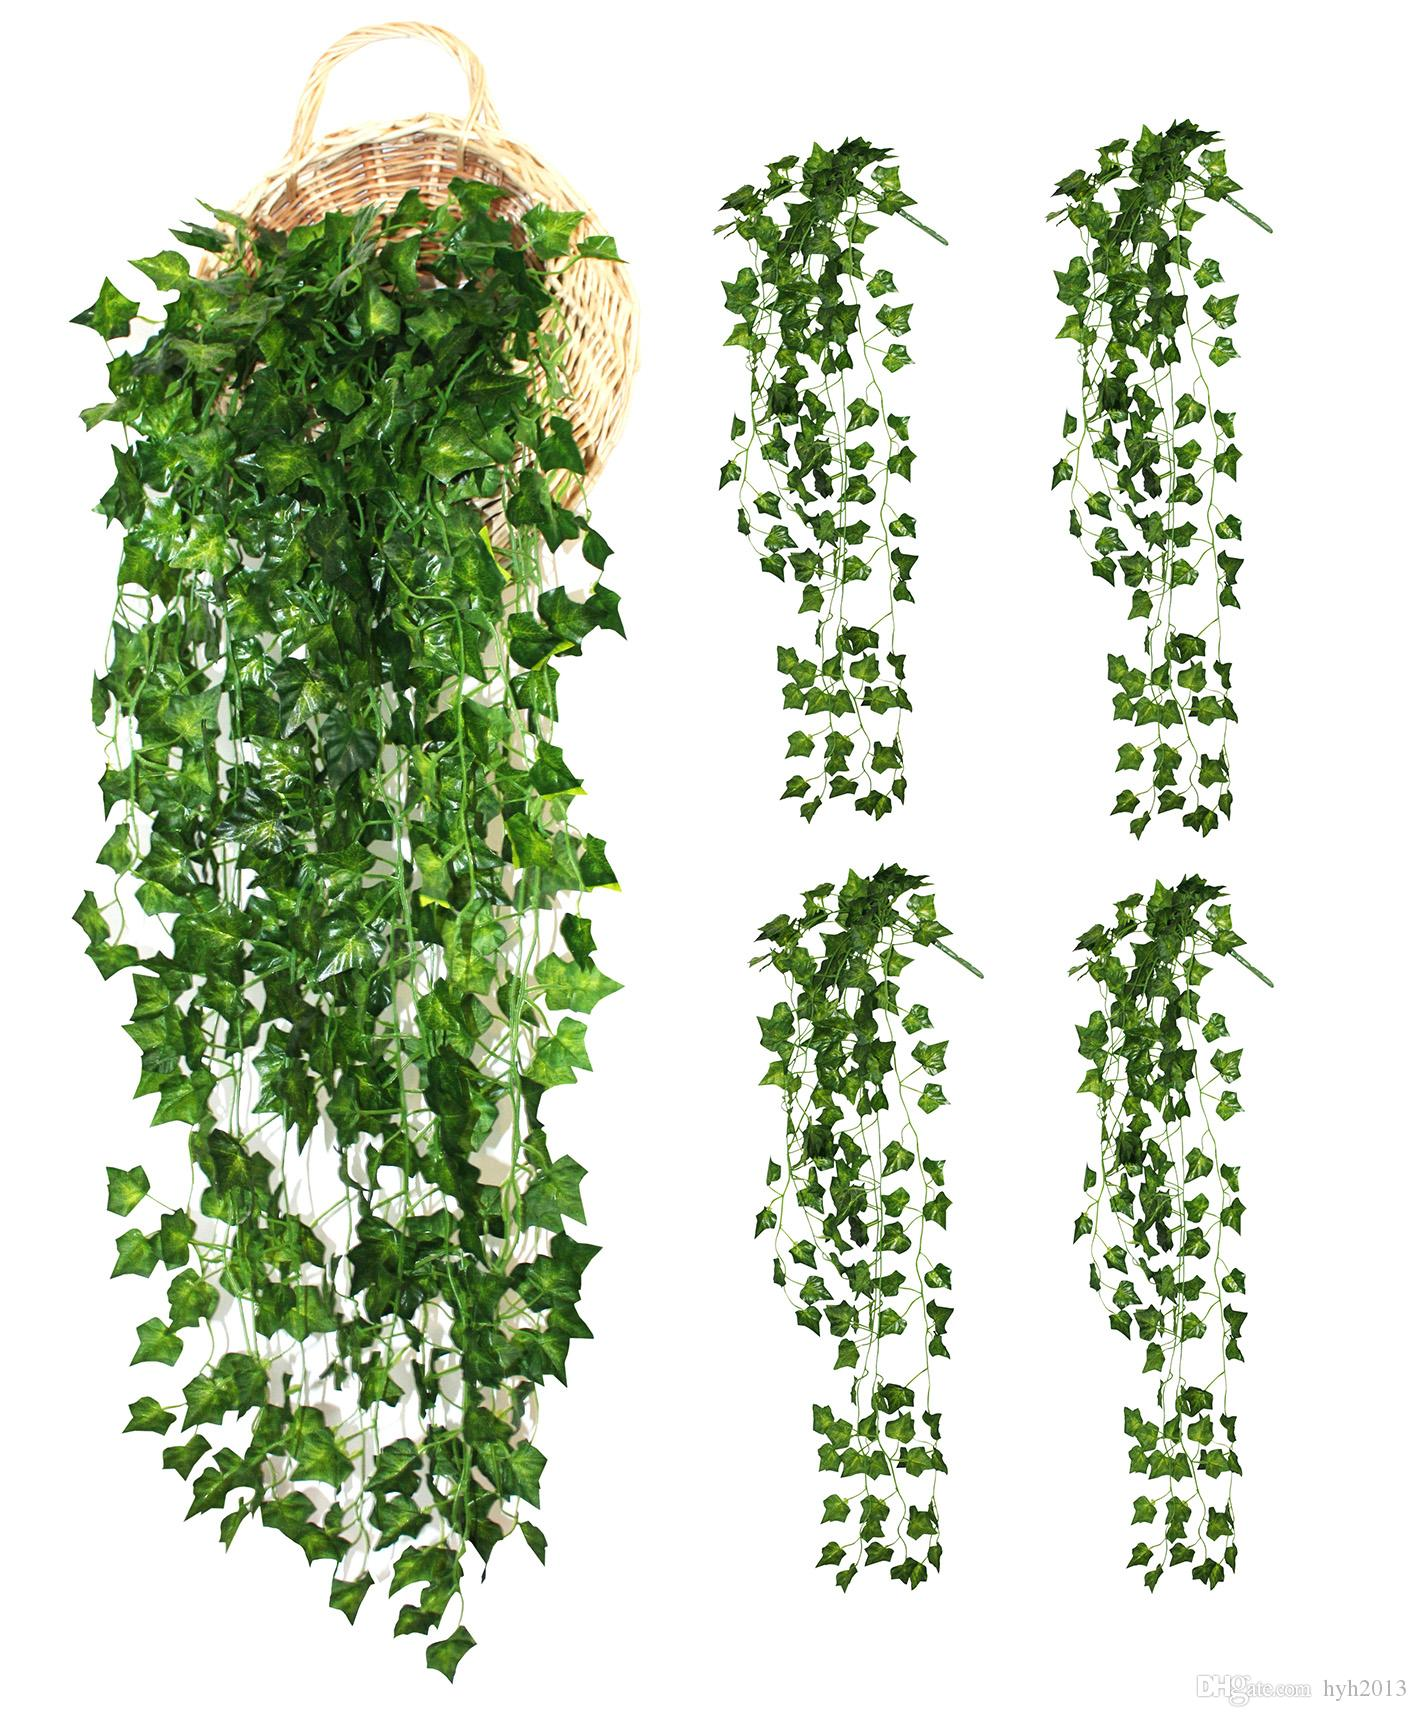 4 Bunchs Artificial vines Home Garden Wall Decoration Fake Hanging Plant Ivy Leaves Garland